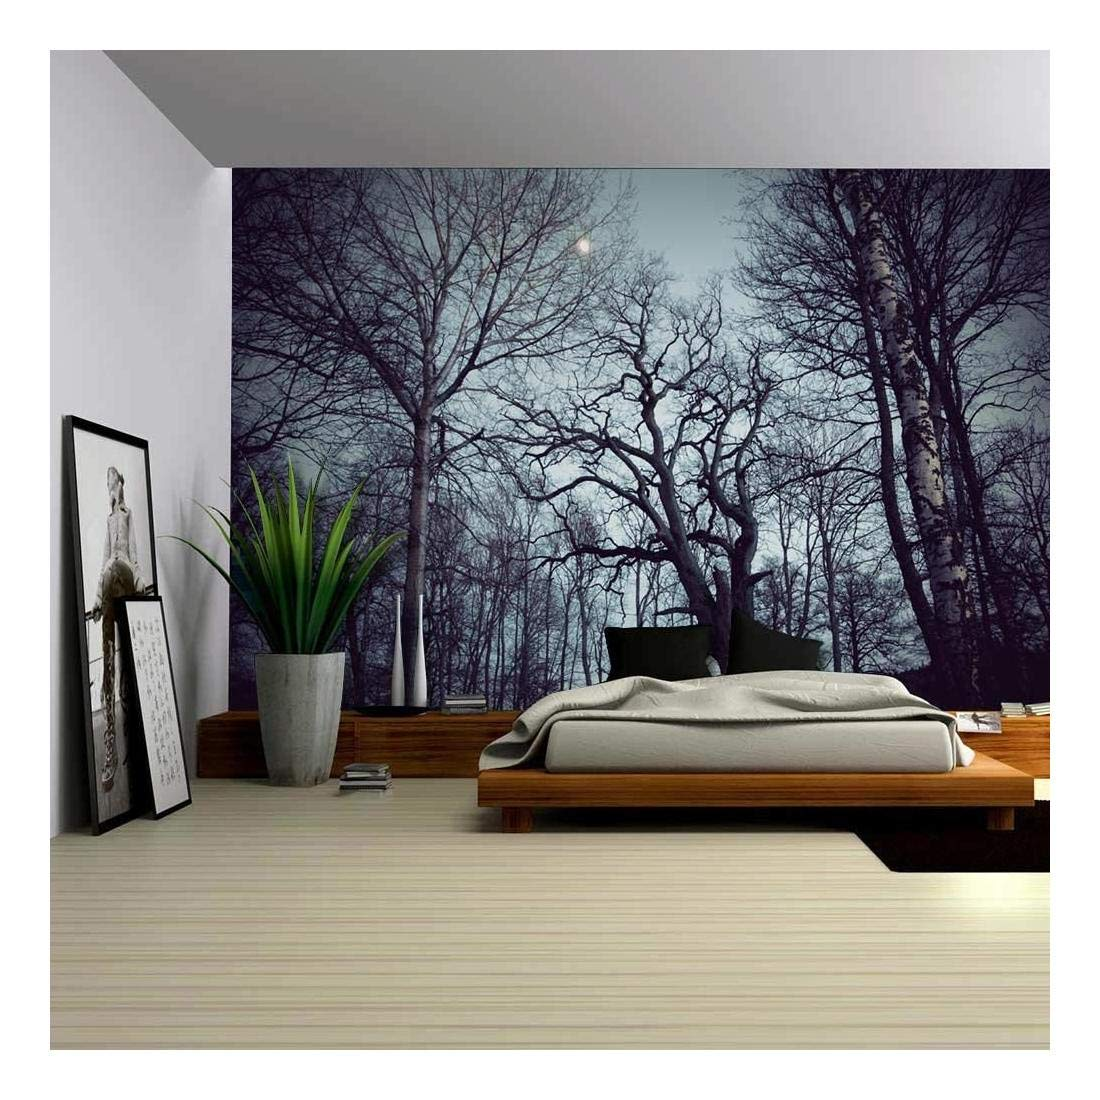 Gazing View of The Sky from The Inside of a Forest - Wall Mural, Removable Sticker, Home Decor - 100x144 inches